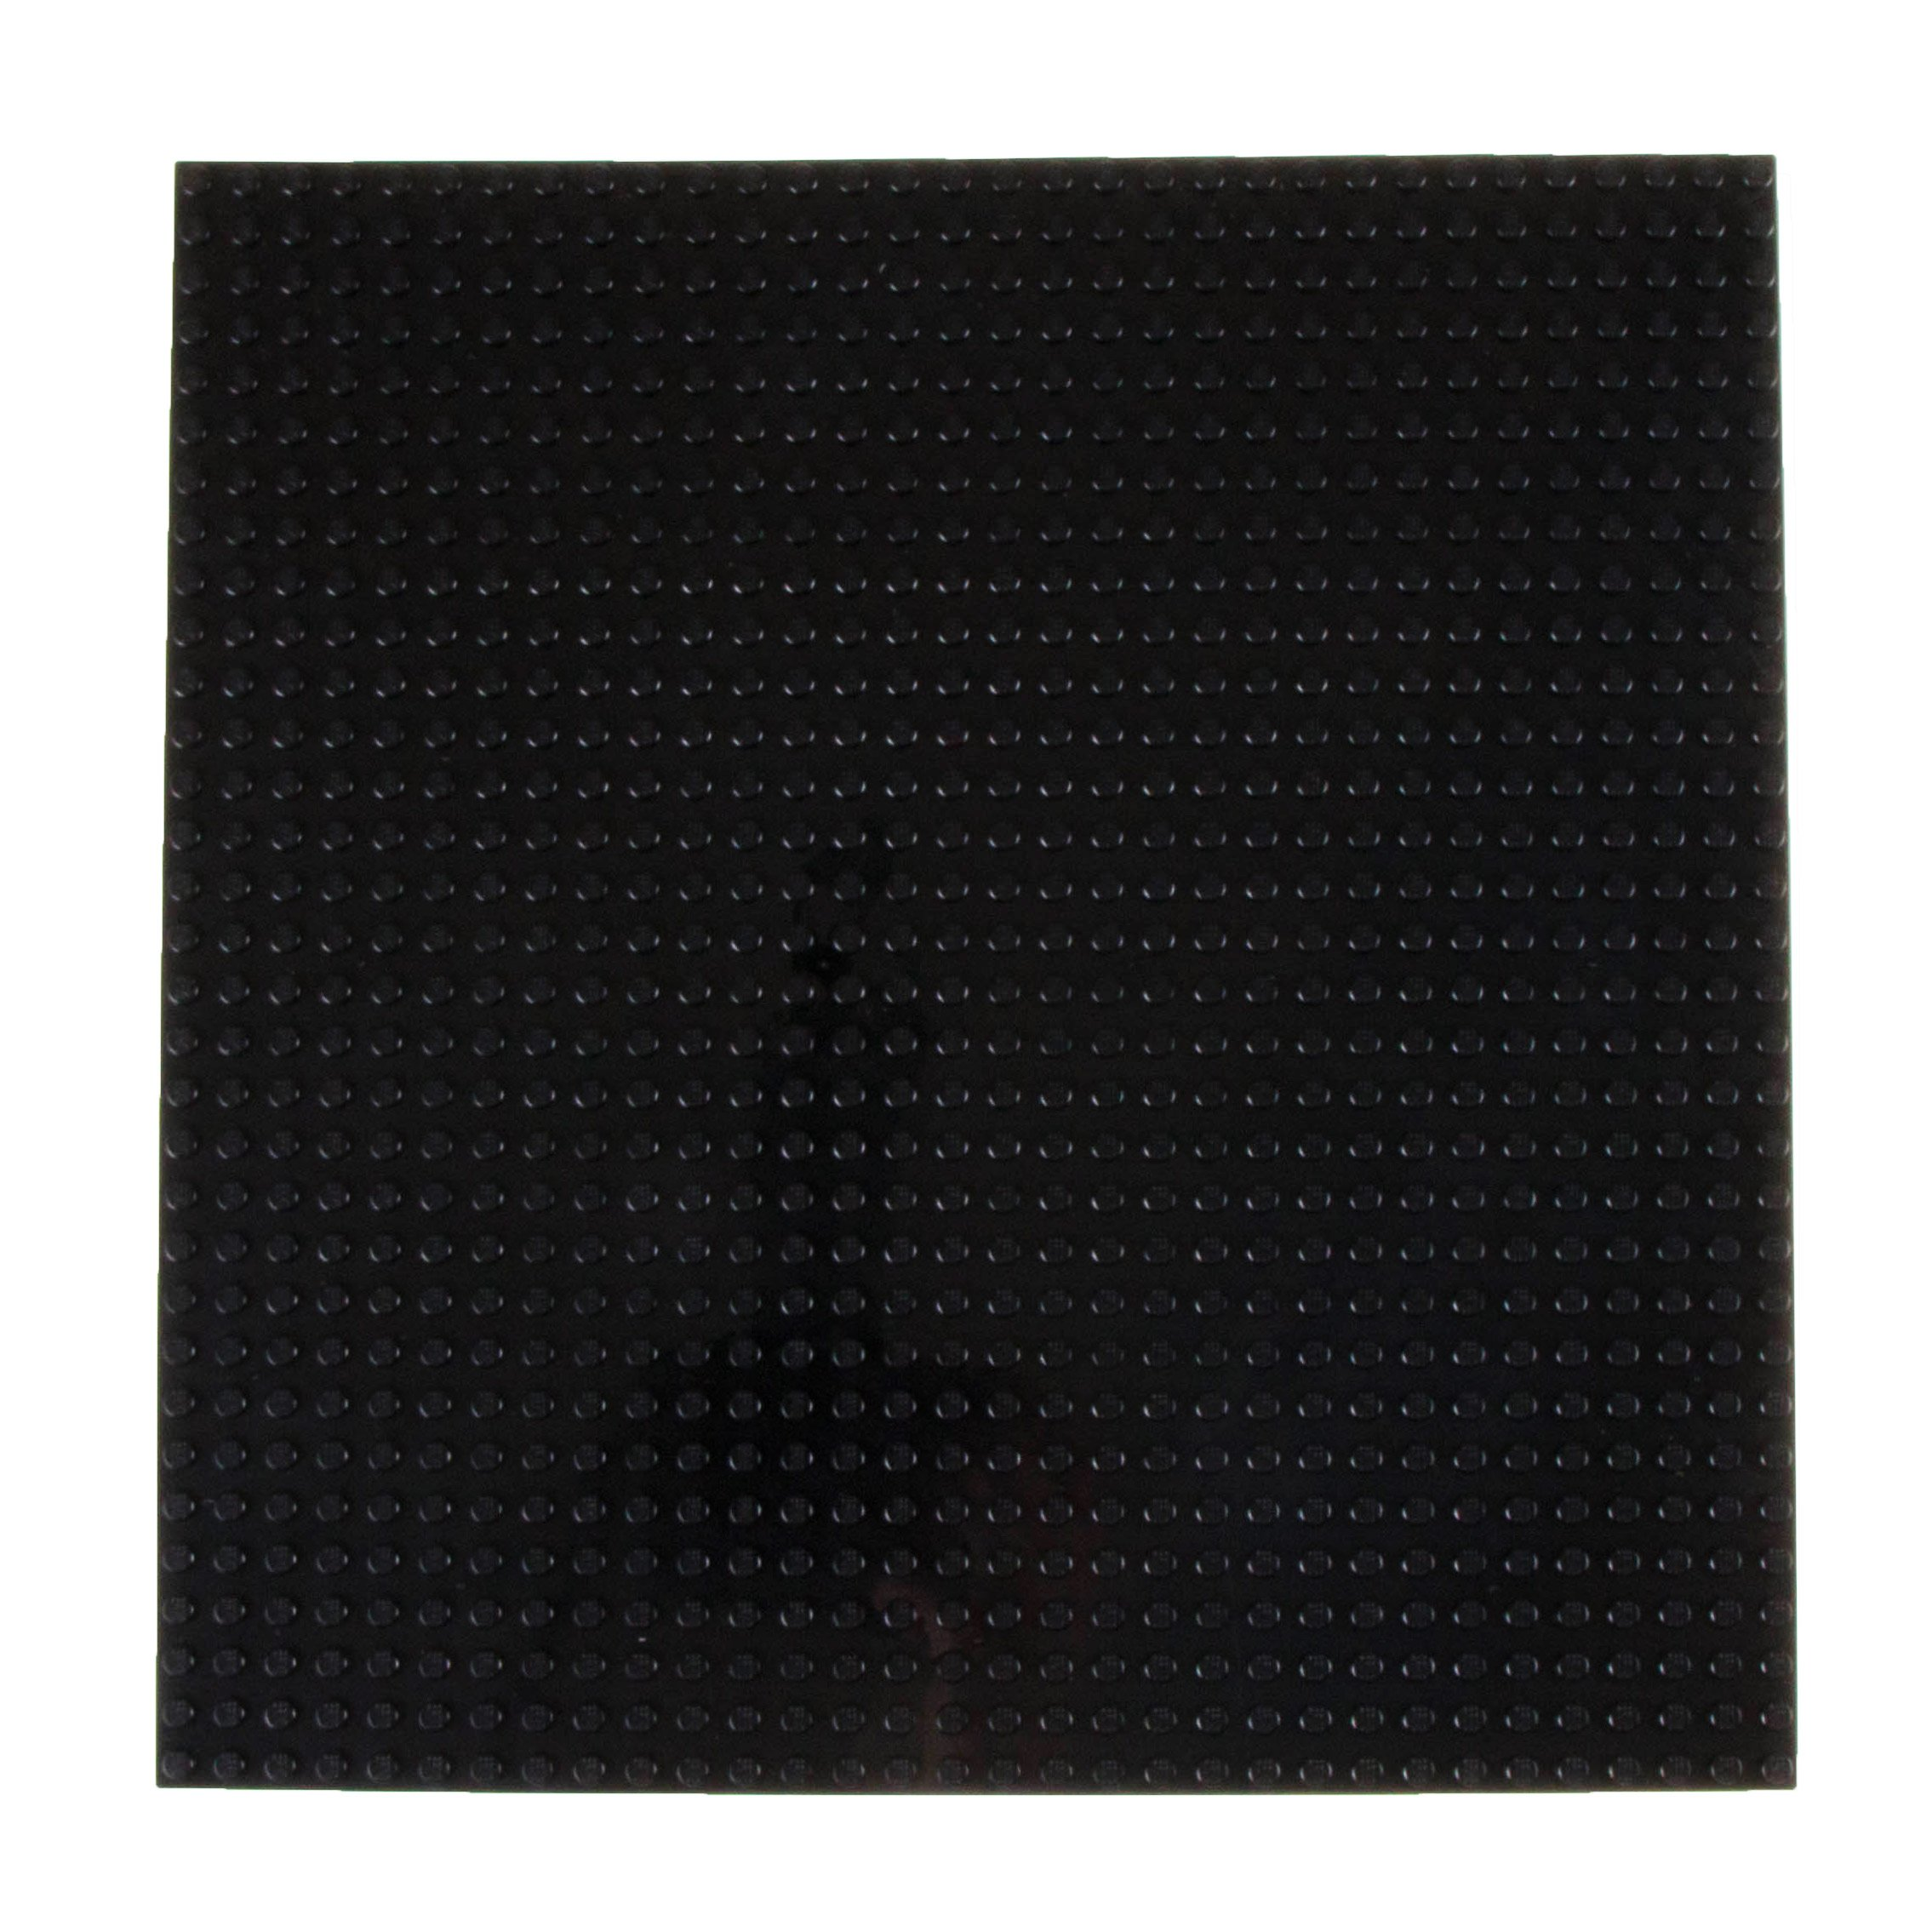 """Strictly Briks Classic Baseplates 10"""" x 10"""" Stackable Brick Base Plate 100% Compatible with All Major Brands   Baseplate for Building Towers, Tables & More   1 Black Baseplate"""